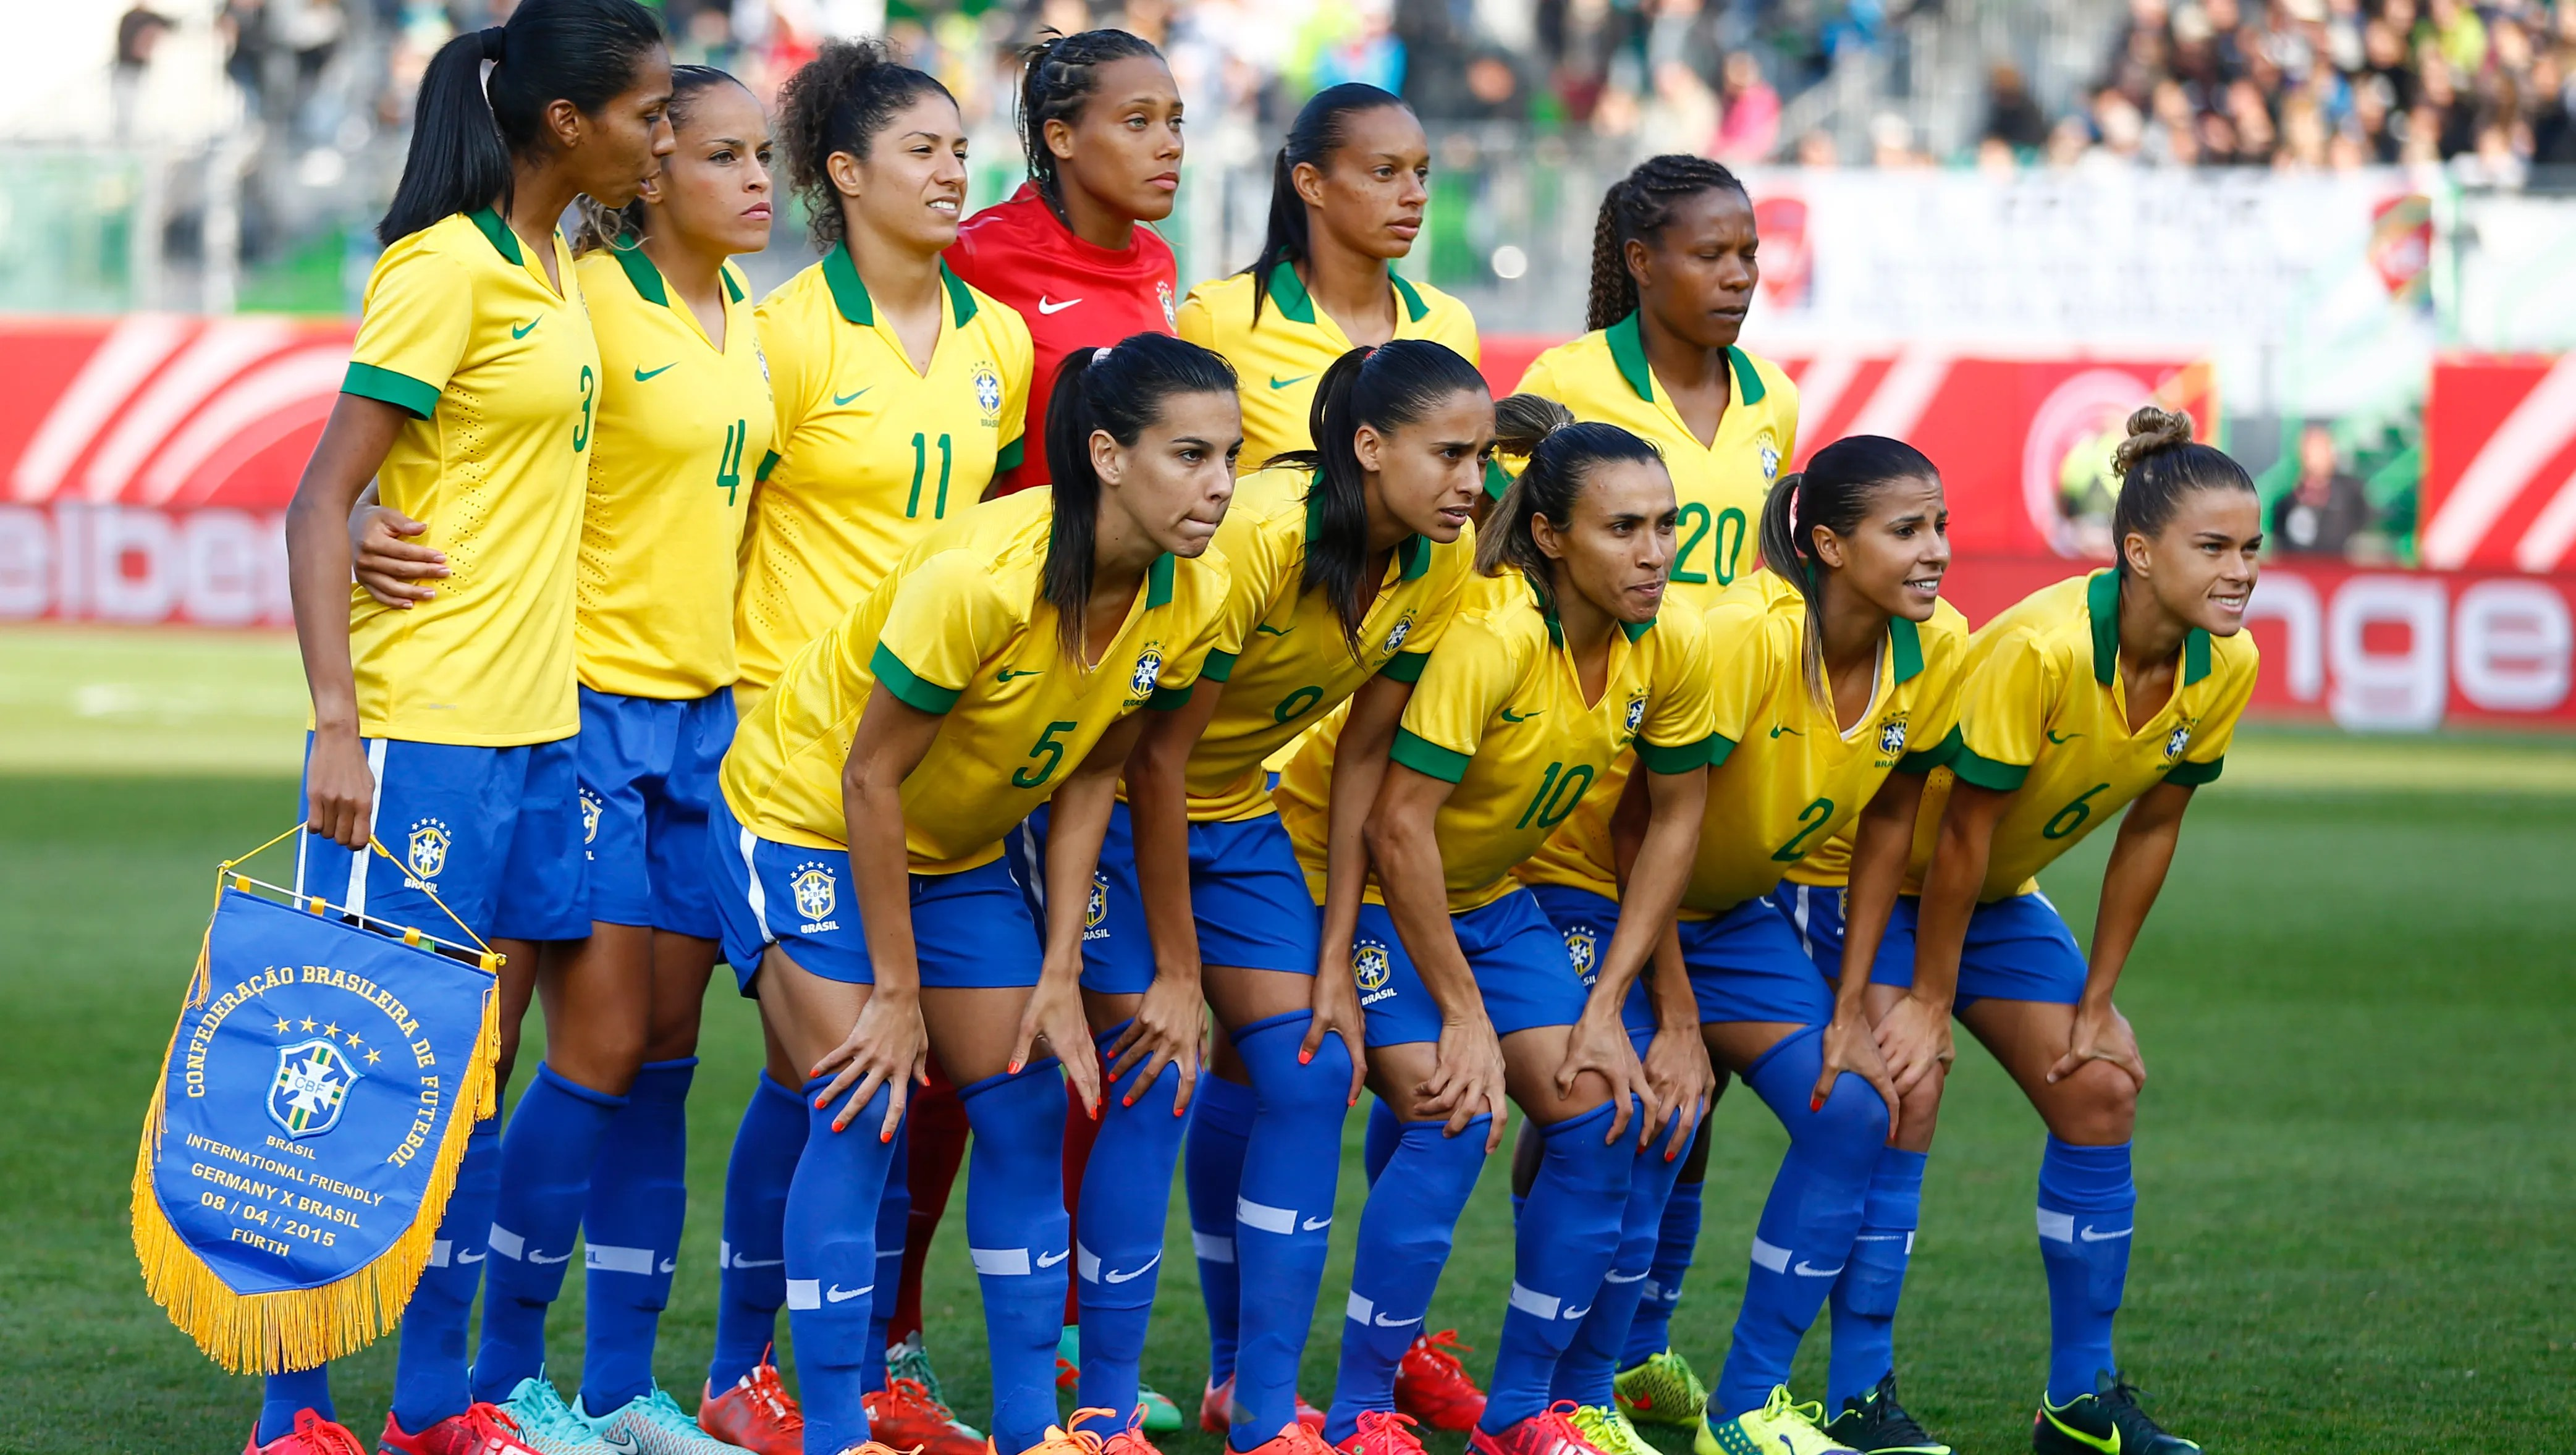 Brazil behind times when it comes to embracing women's soccer